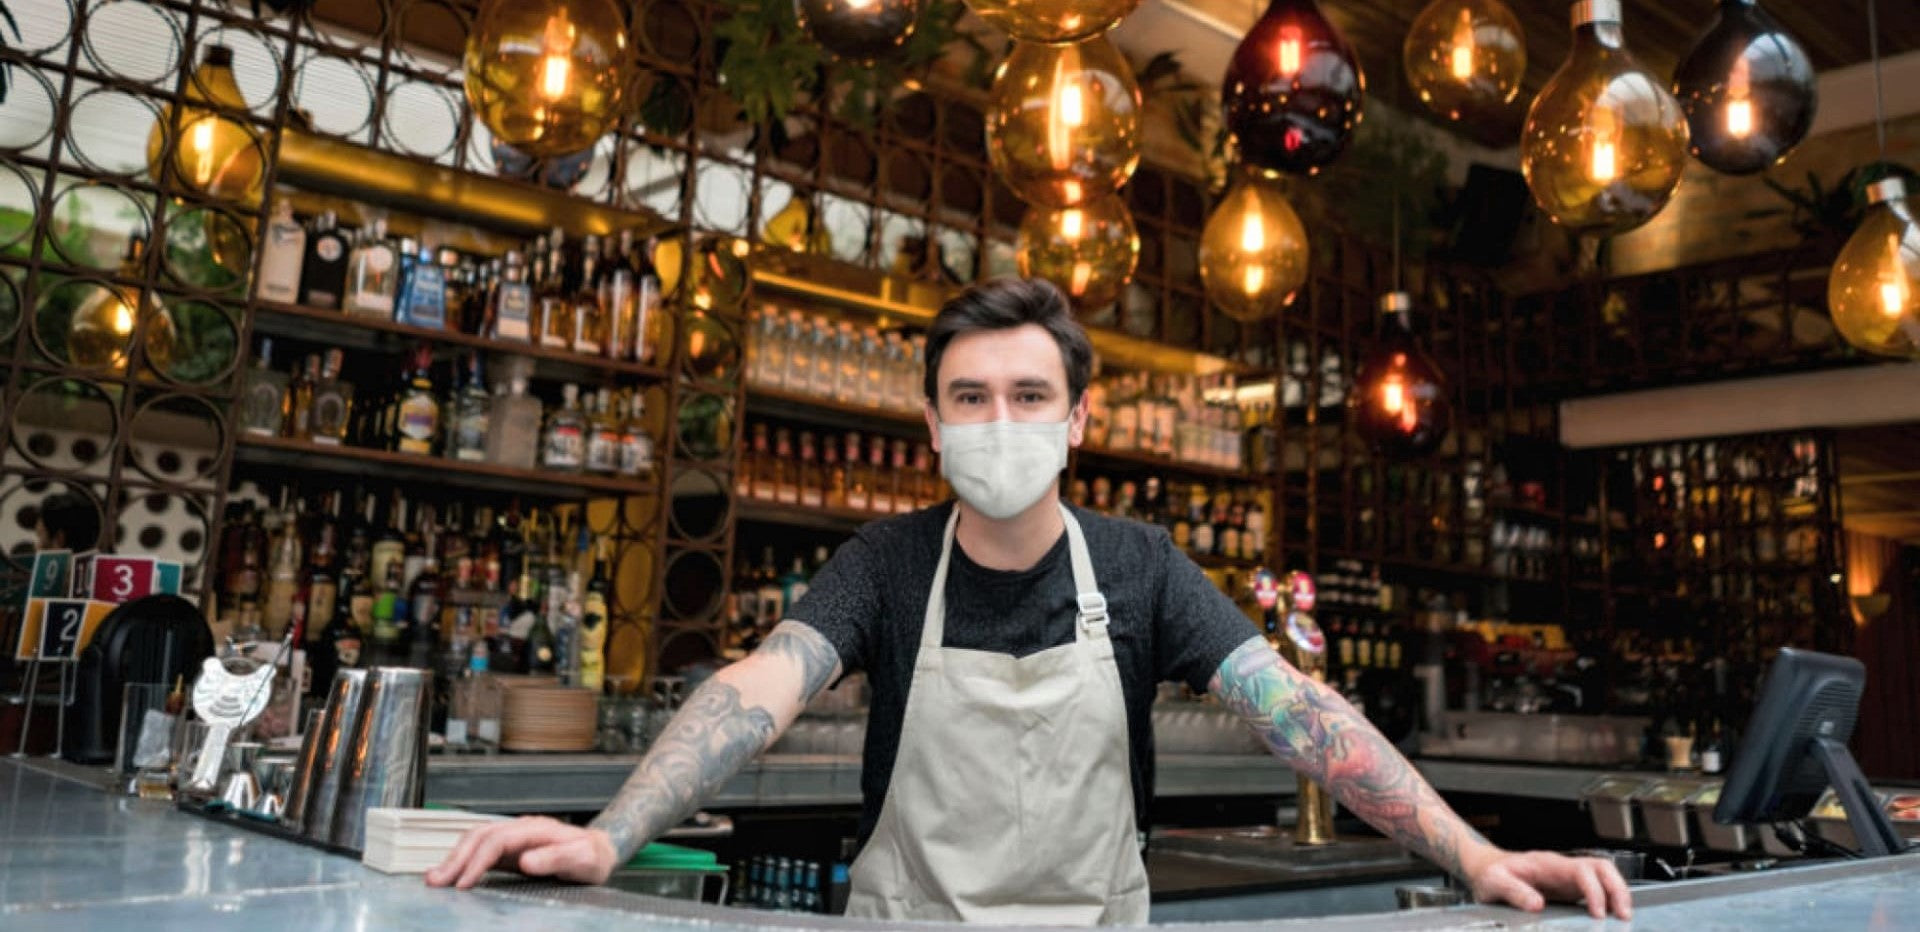 barman in face mask stands behind bar in newly reopened restaurant